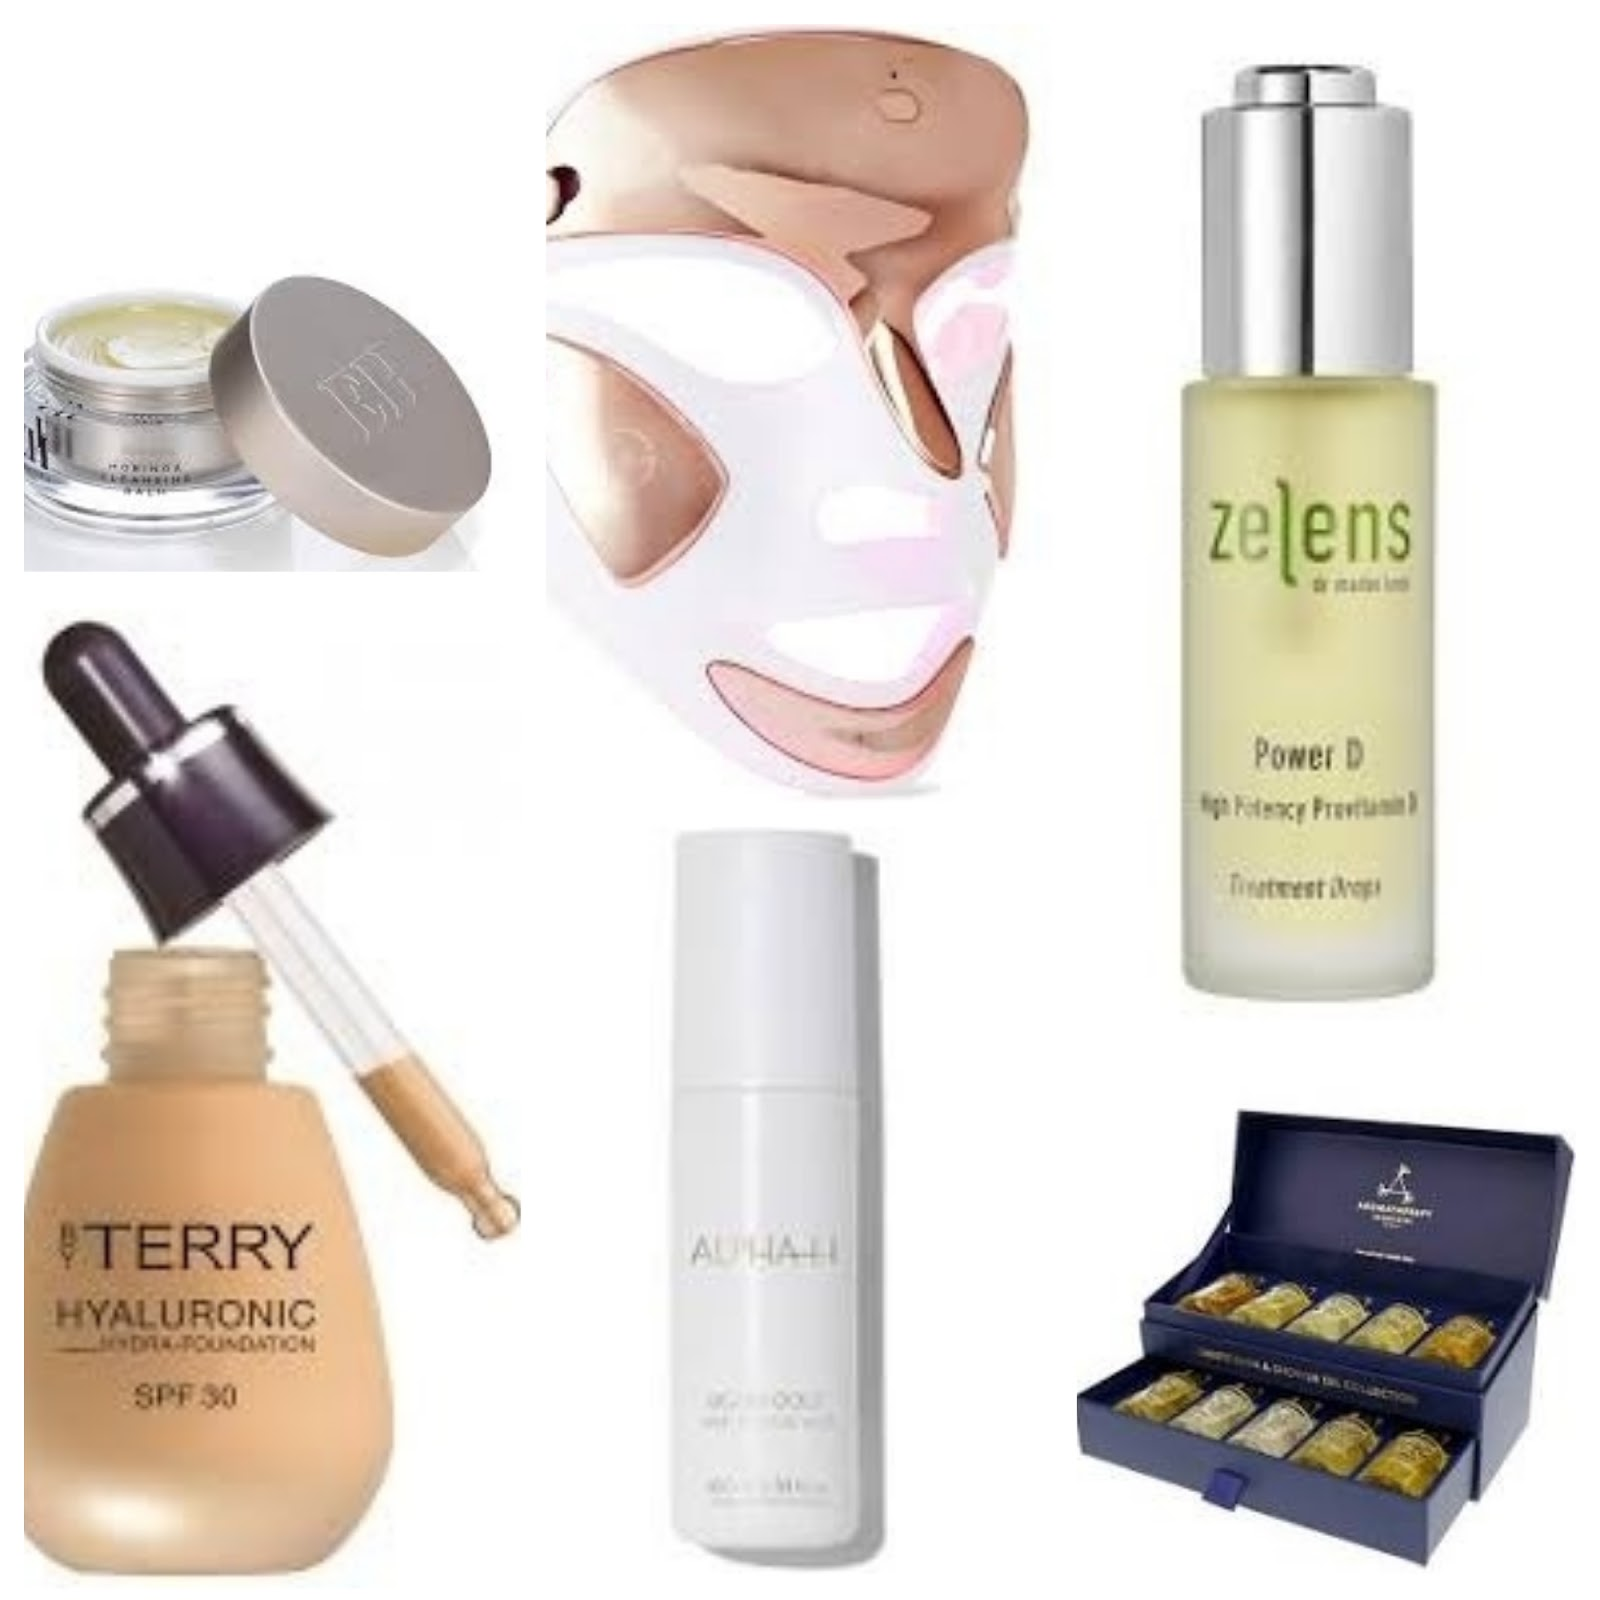 My top picks from Look Fantastic with 20% off, Look Fantastic Discount Code,